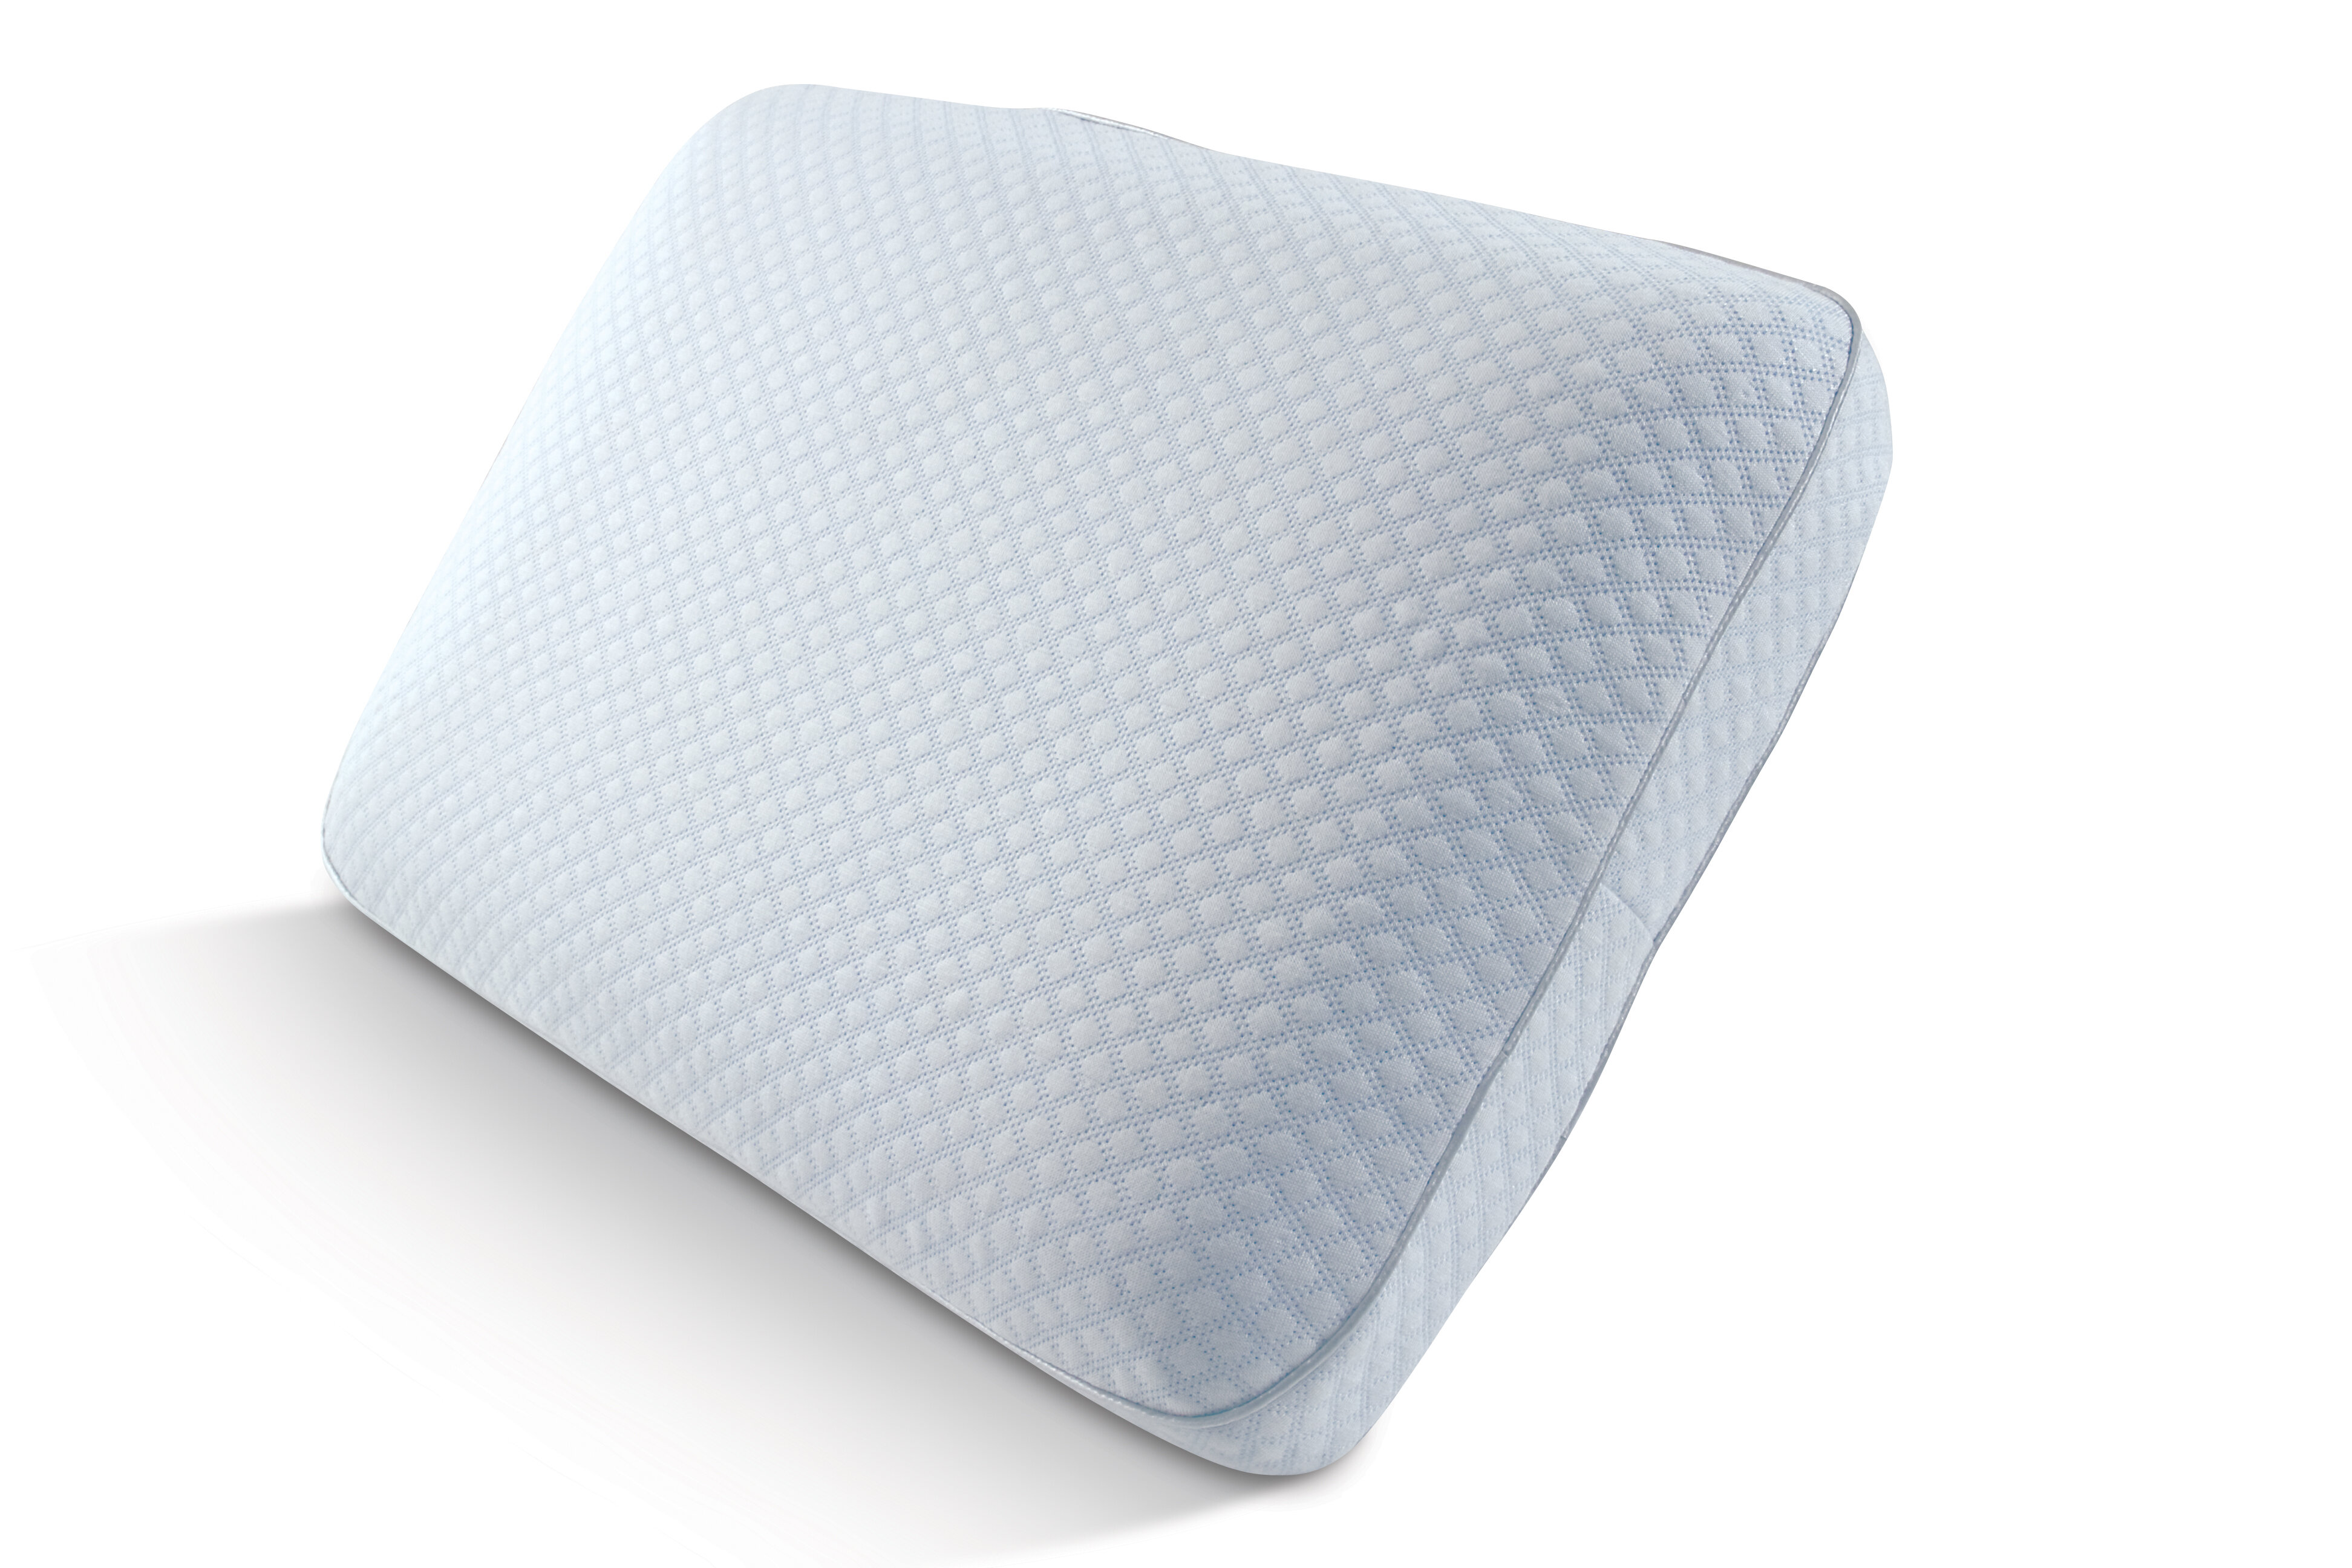 ee5945e10c90 Pure Rest Big and Soft Cooling Gel Ventilated Memory Foam Pillow ...